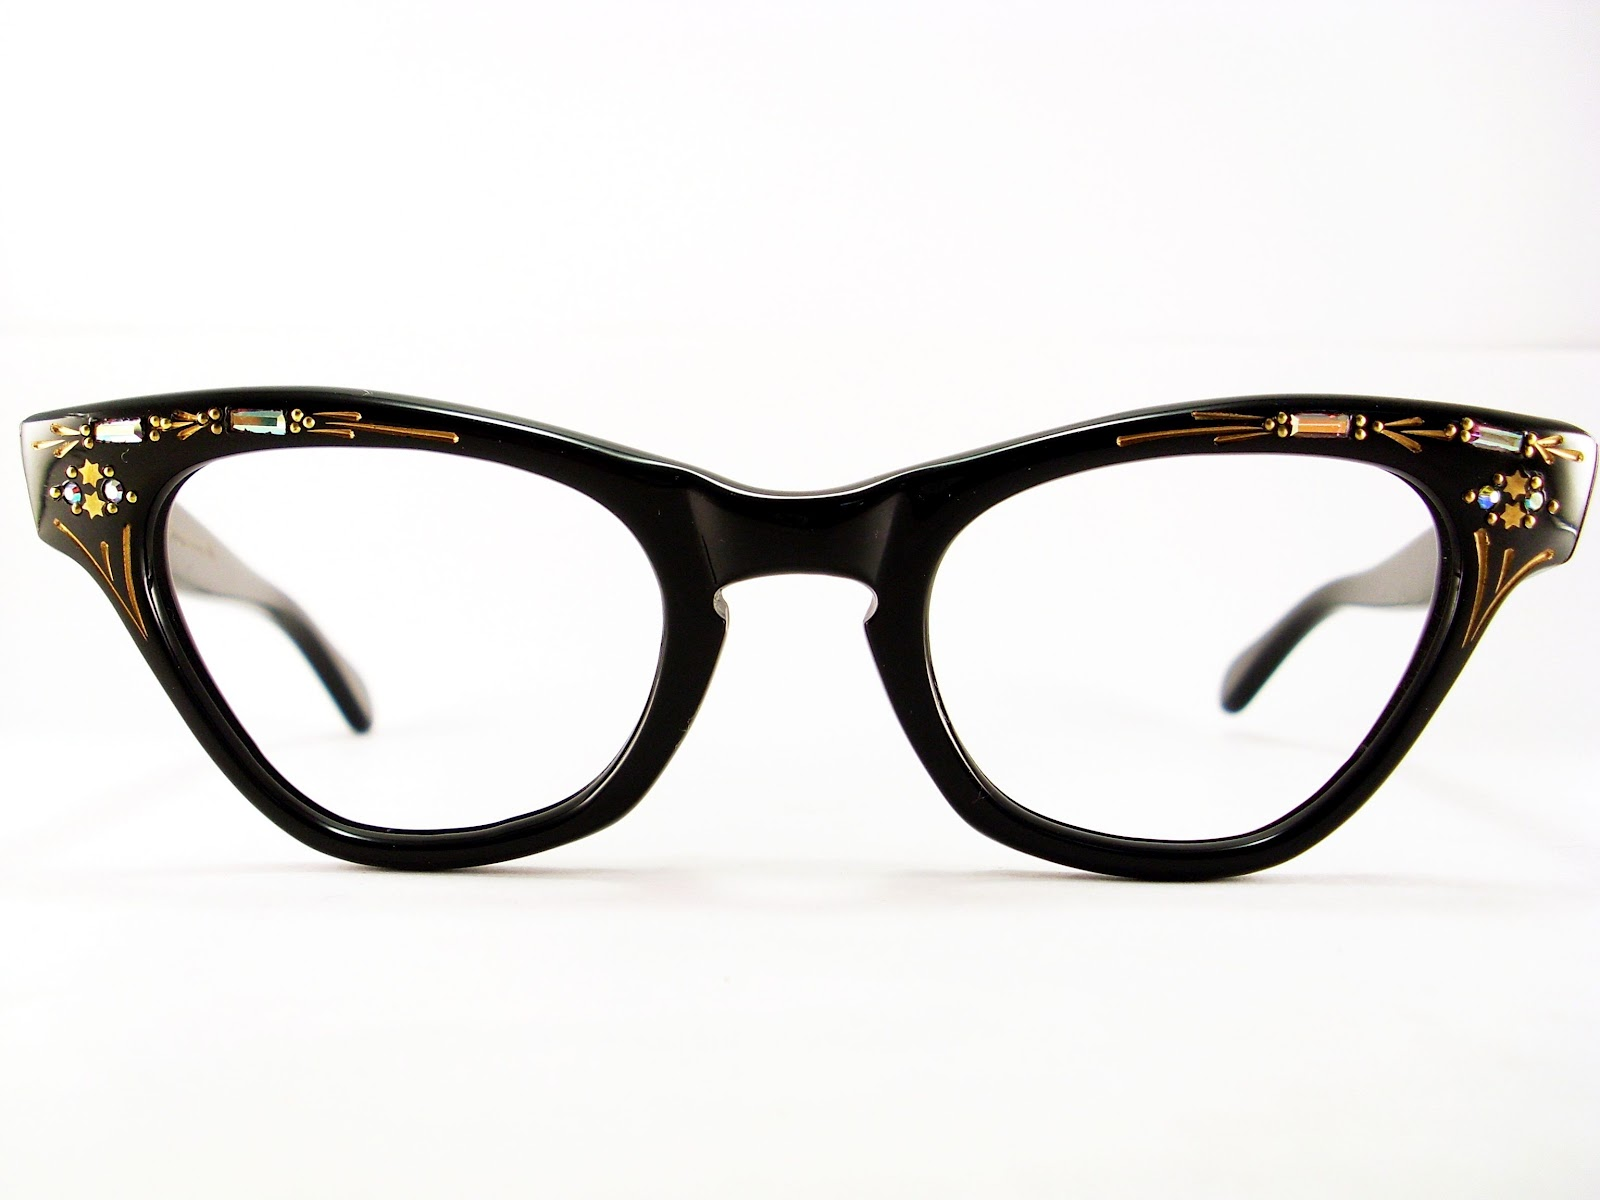 Eyeglass Frame : Vintage Eyeglasses Frames Eyewear Sunglasses 50S: CAT EYE ...